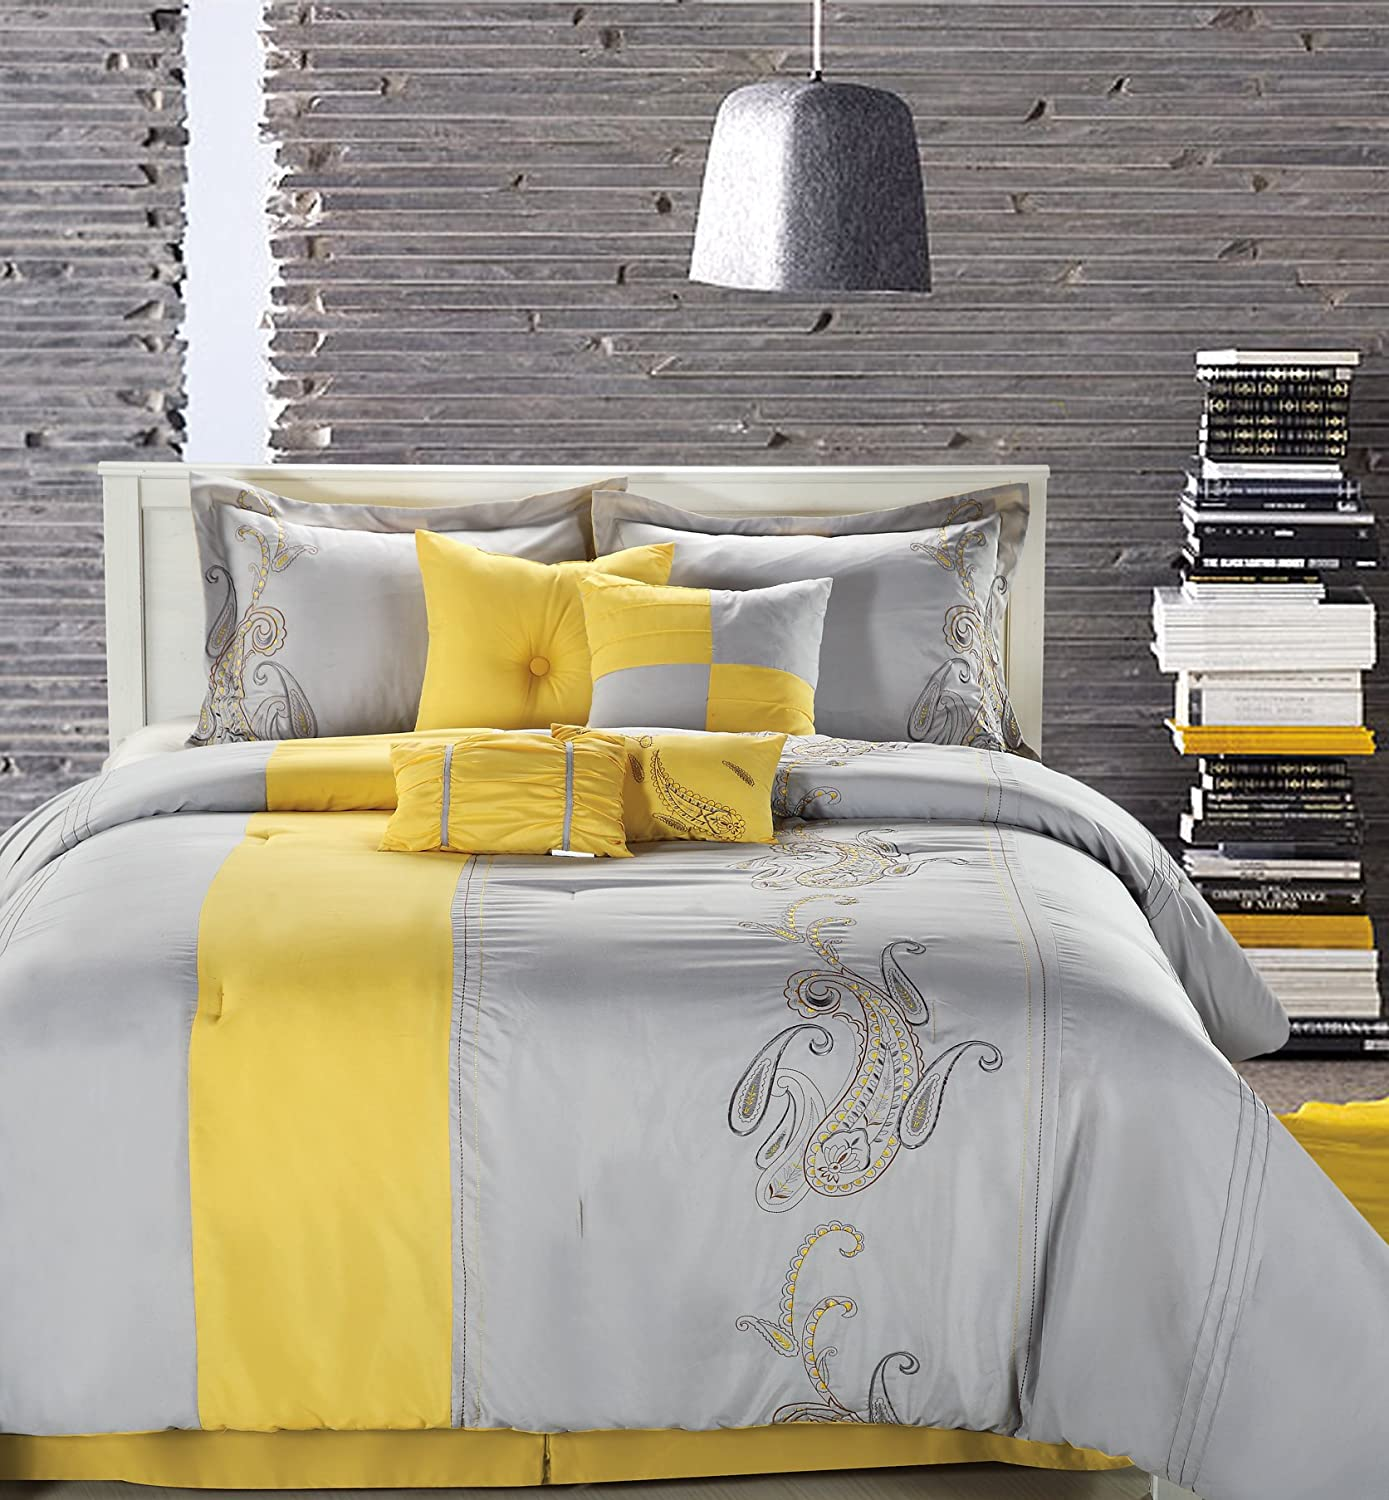 yellow and grey bedding sets ZUvbQ5SI